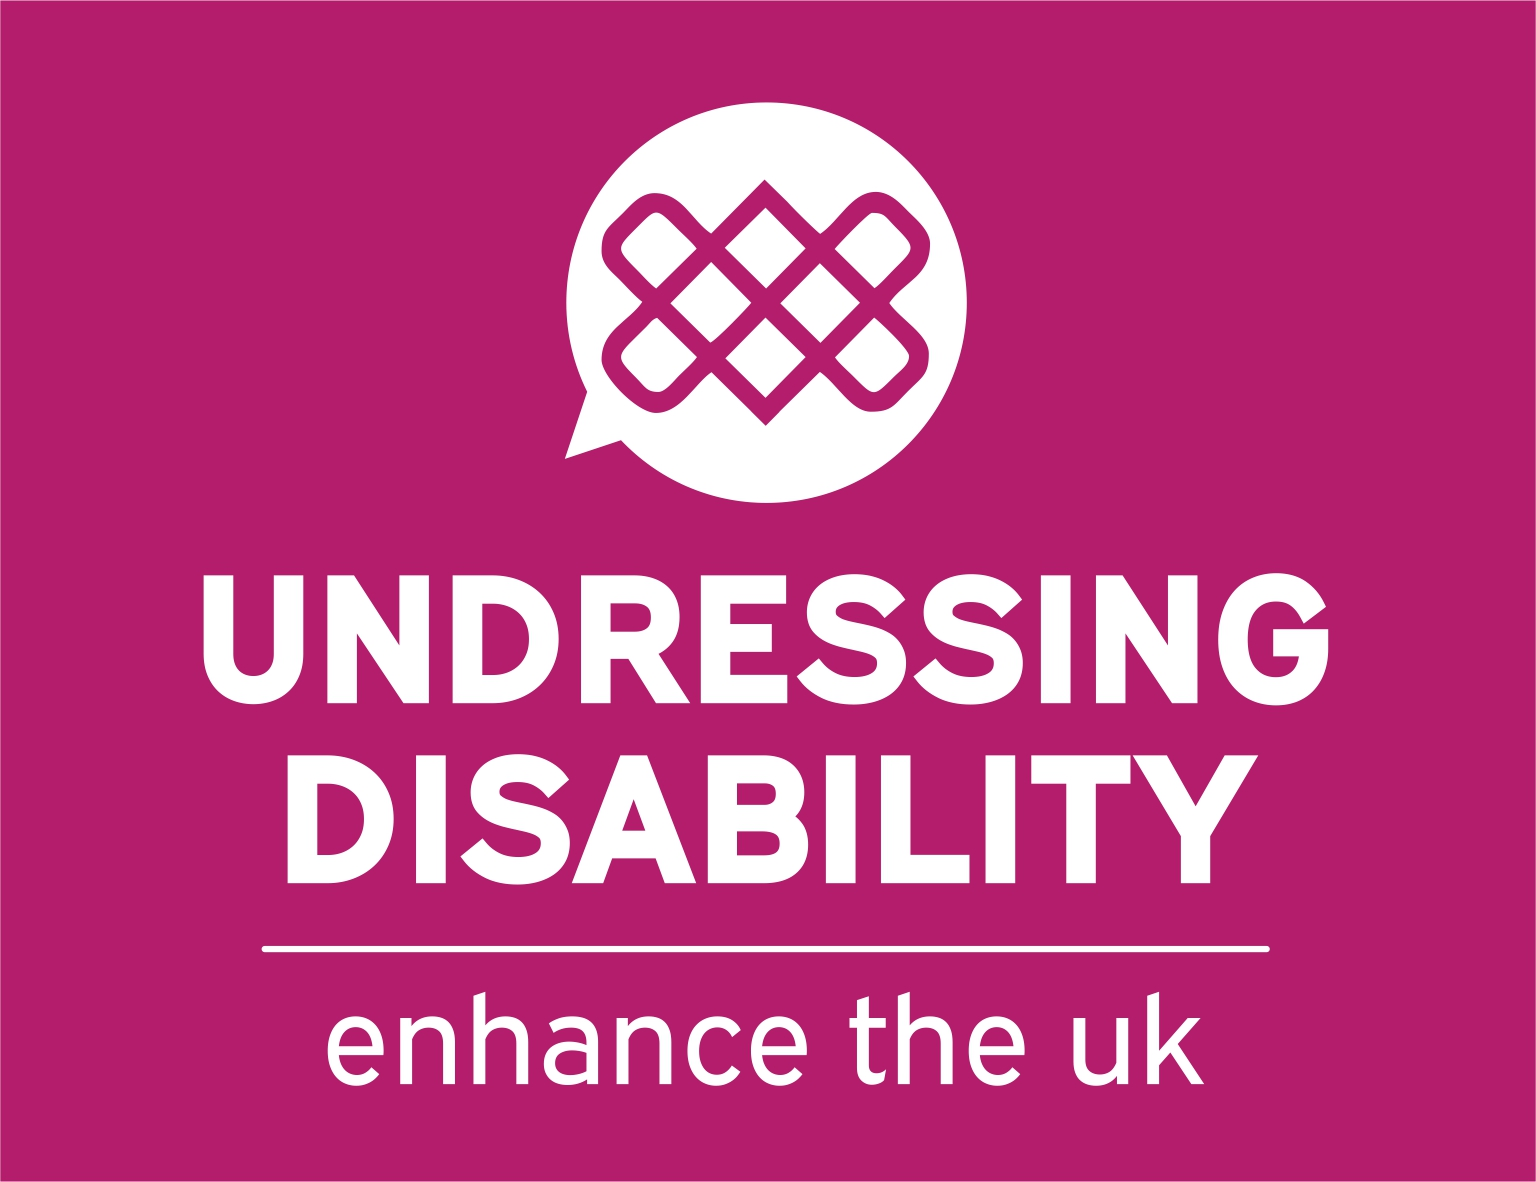 The Undressing Disability Logo